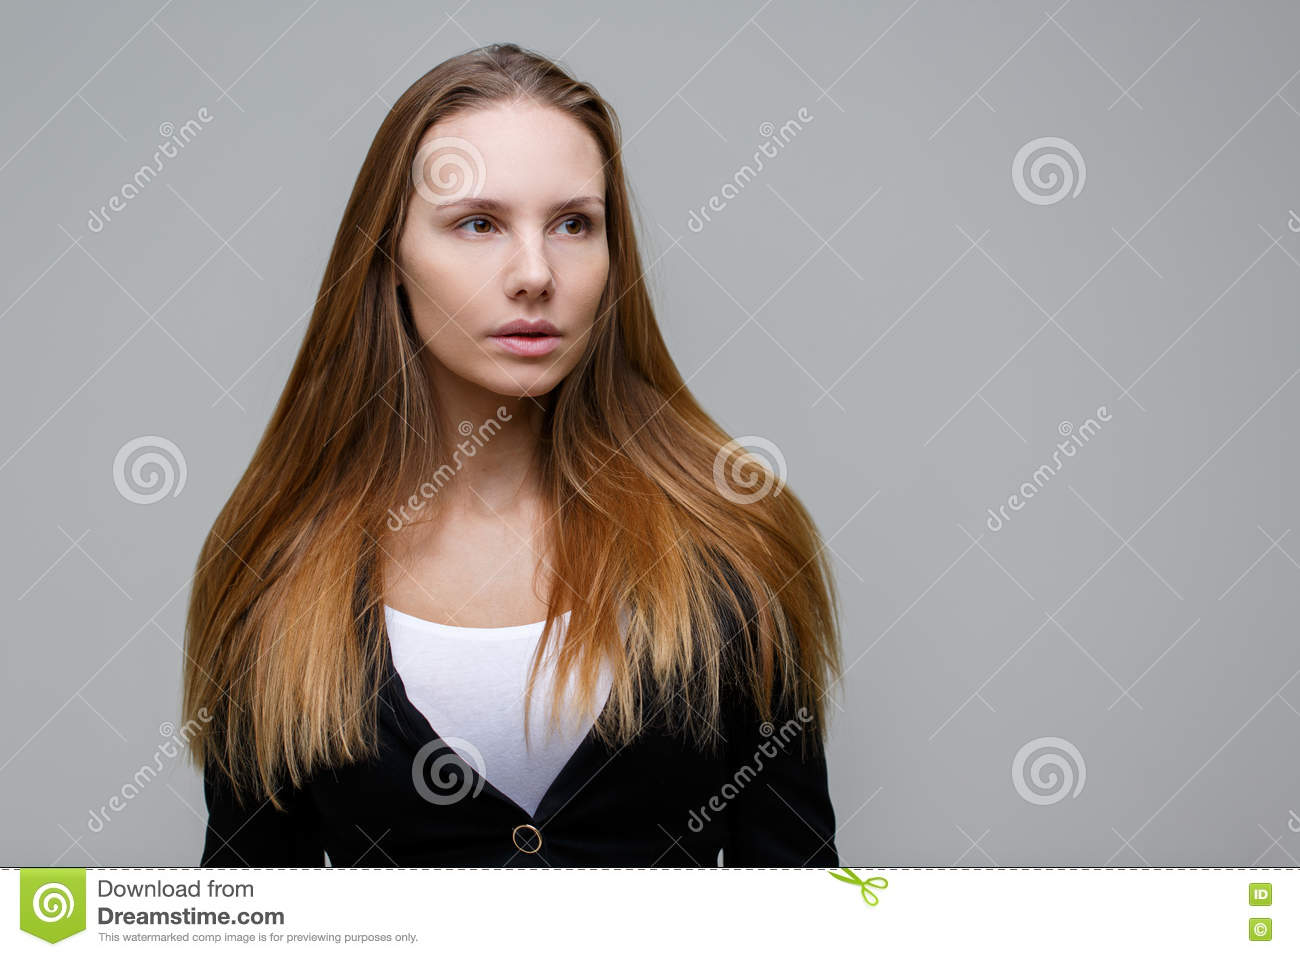 Blond woman on gray background